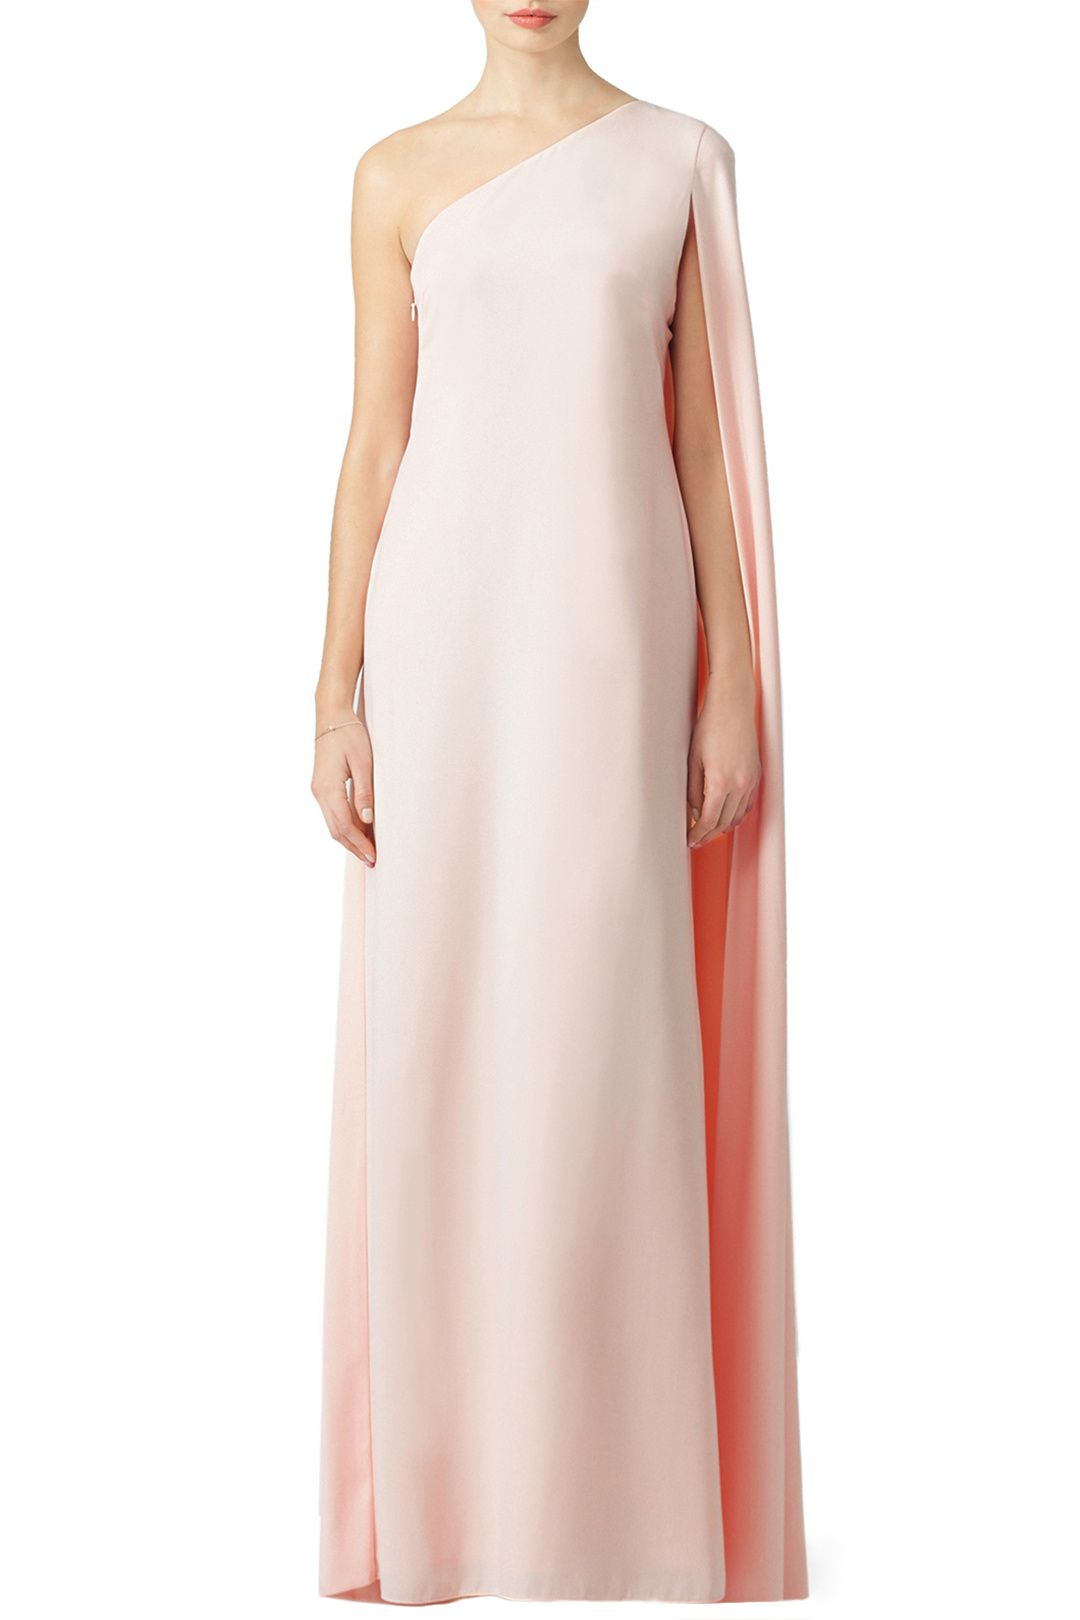 0b4d072d27e0 Rent Clay Ruffle Gown by Christian Siriano for $525 only at Rent the  Runway. | Bridesmaids in 2019 | Prom dresses, Simple party dress,  Bridesmaid dresses